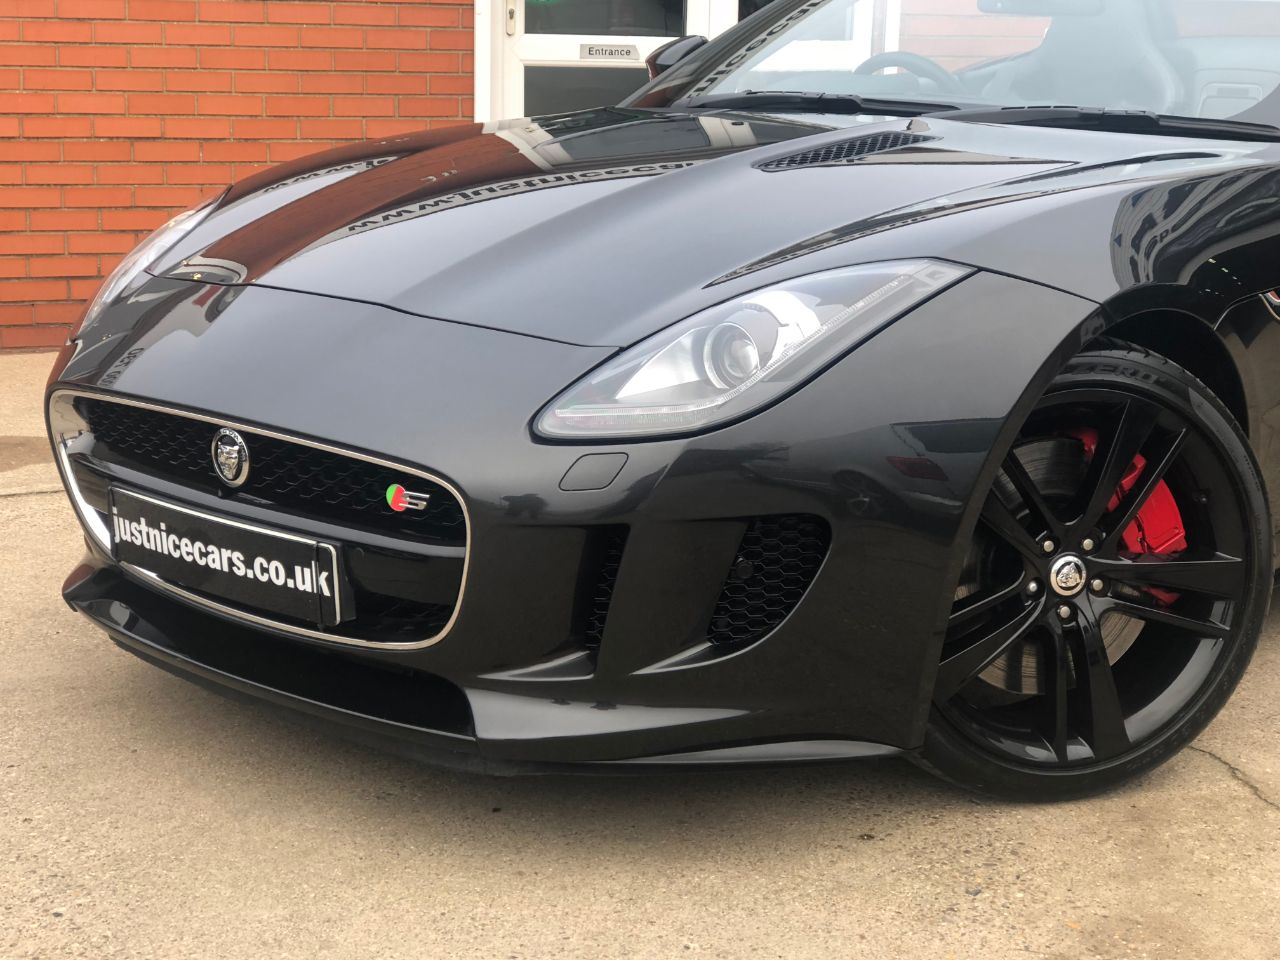 Jaguar F-type 5.0 V8 S Supercharged  2dr Auto 495BHP Convertible Petrol Stratus Grey